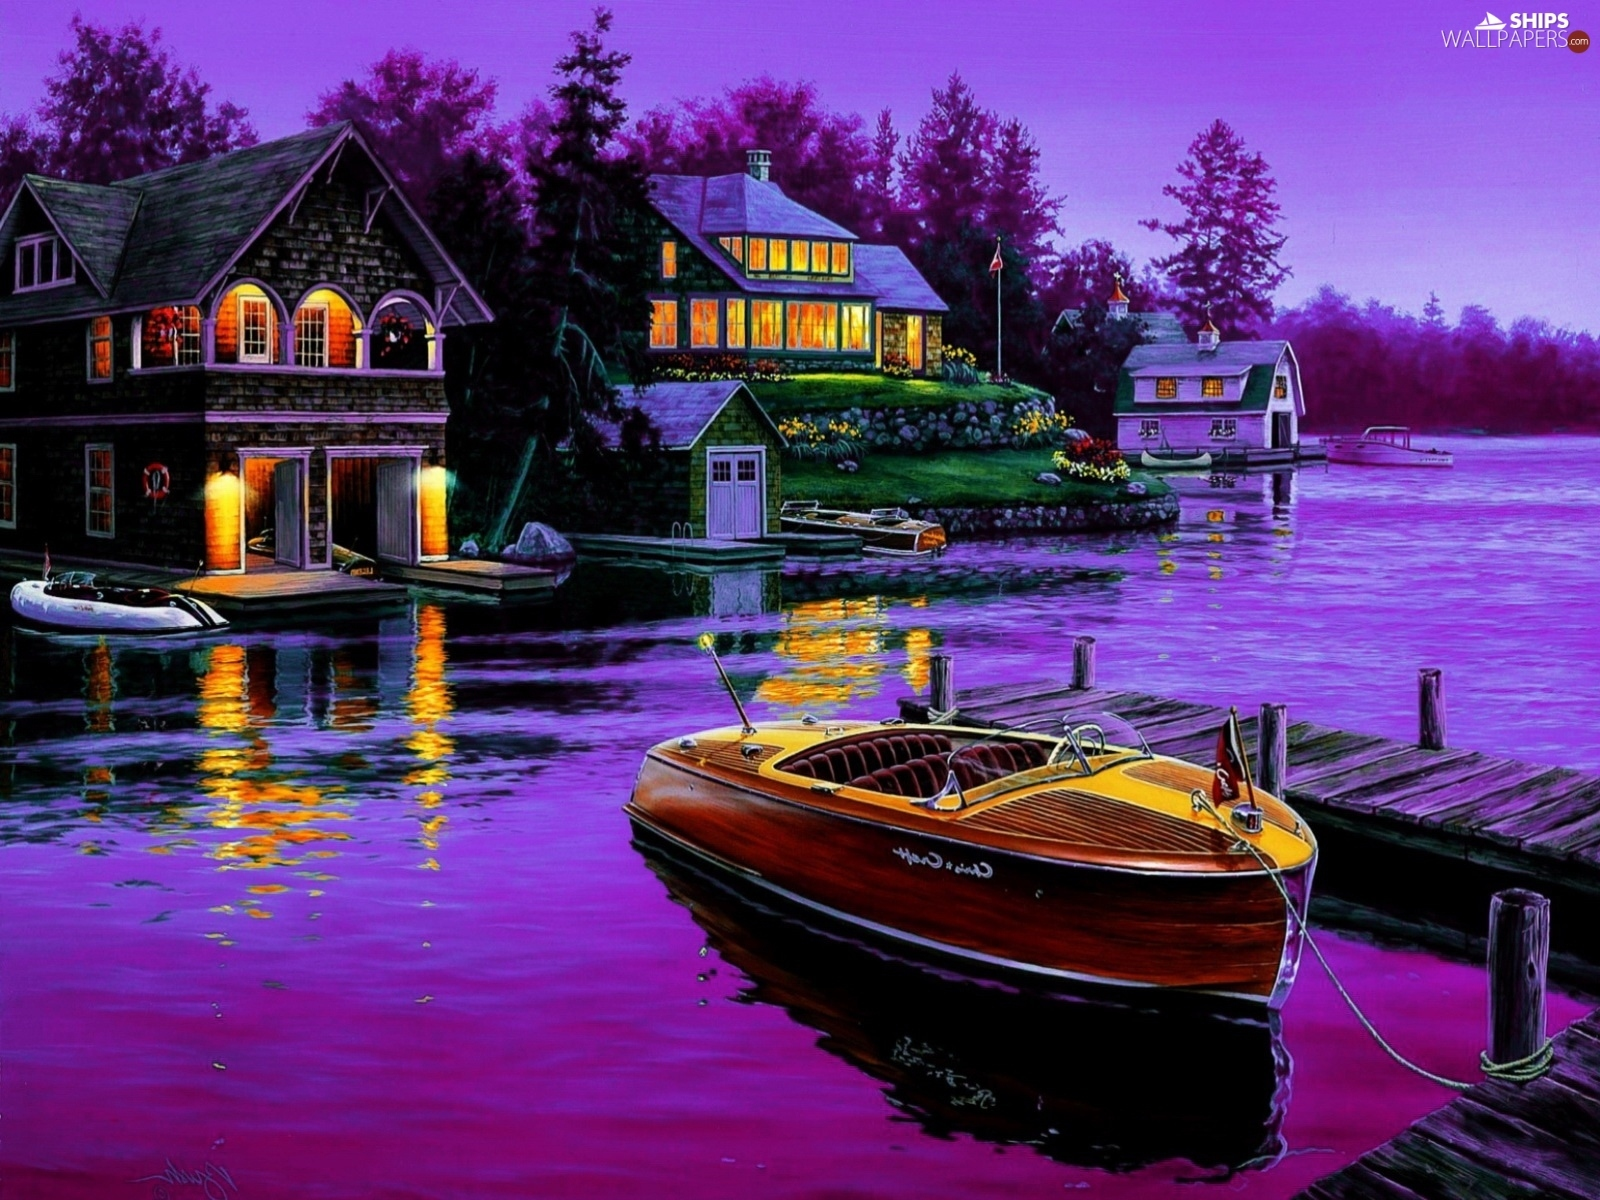 lake, Houses, picture, Motor boat